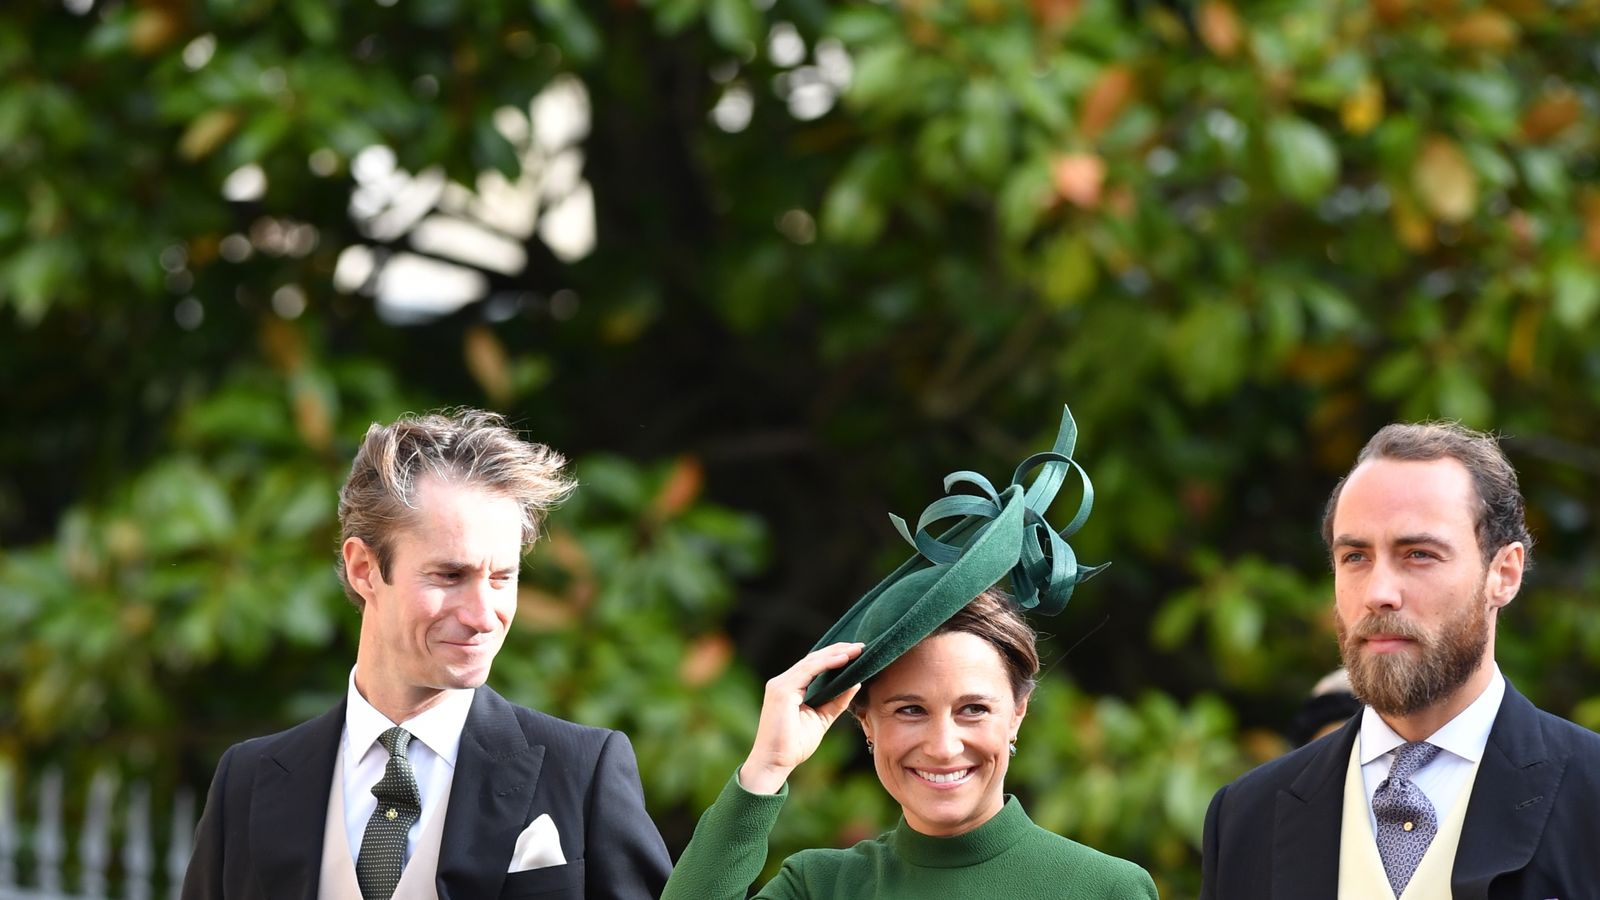 Pippa S Wedding.Pippa Middleton Gives Birth To Her First Child Uk News Sky News